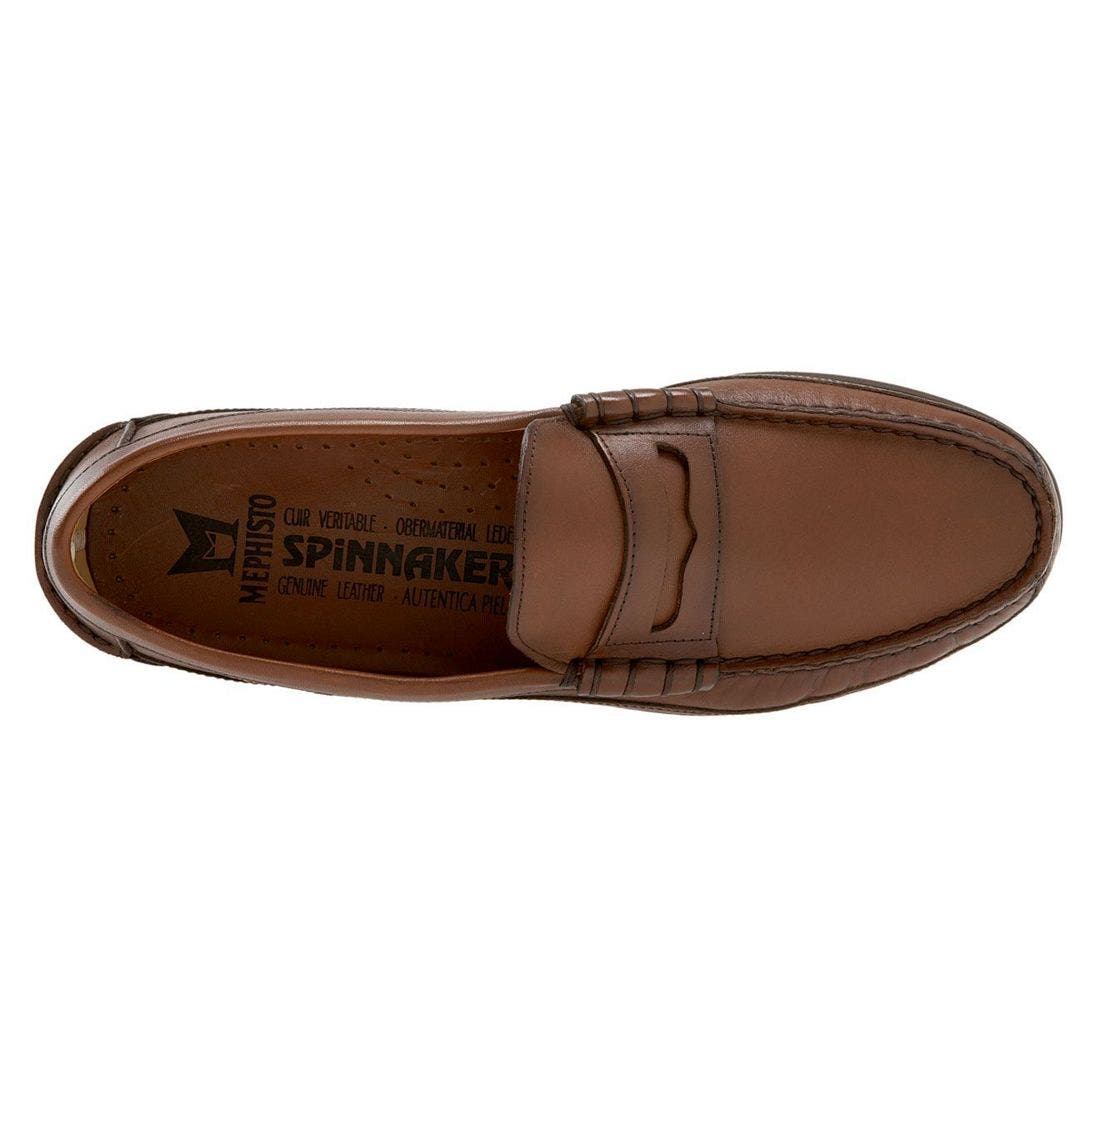 'Cap Vert' Penny Loafer,                             Alternate thumbnail 3, color,                             Rust Leather